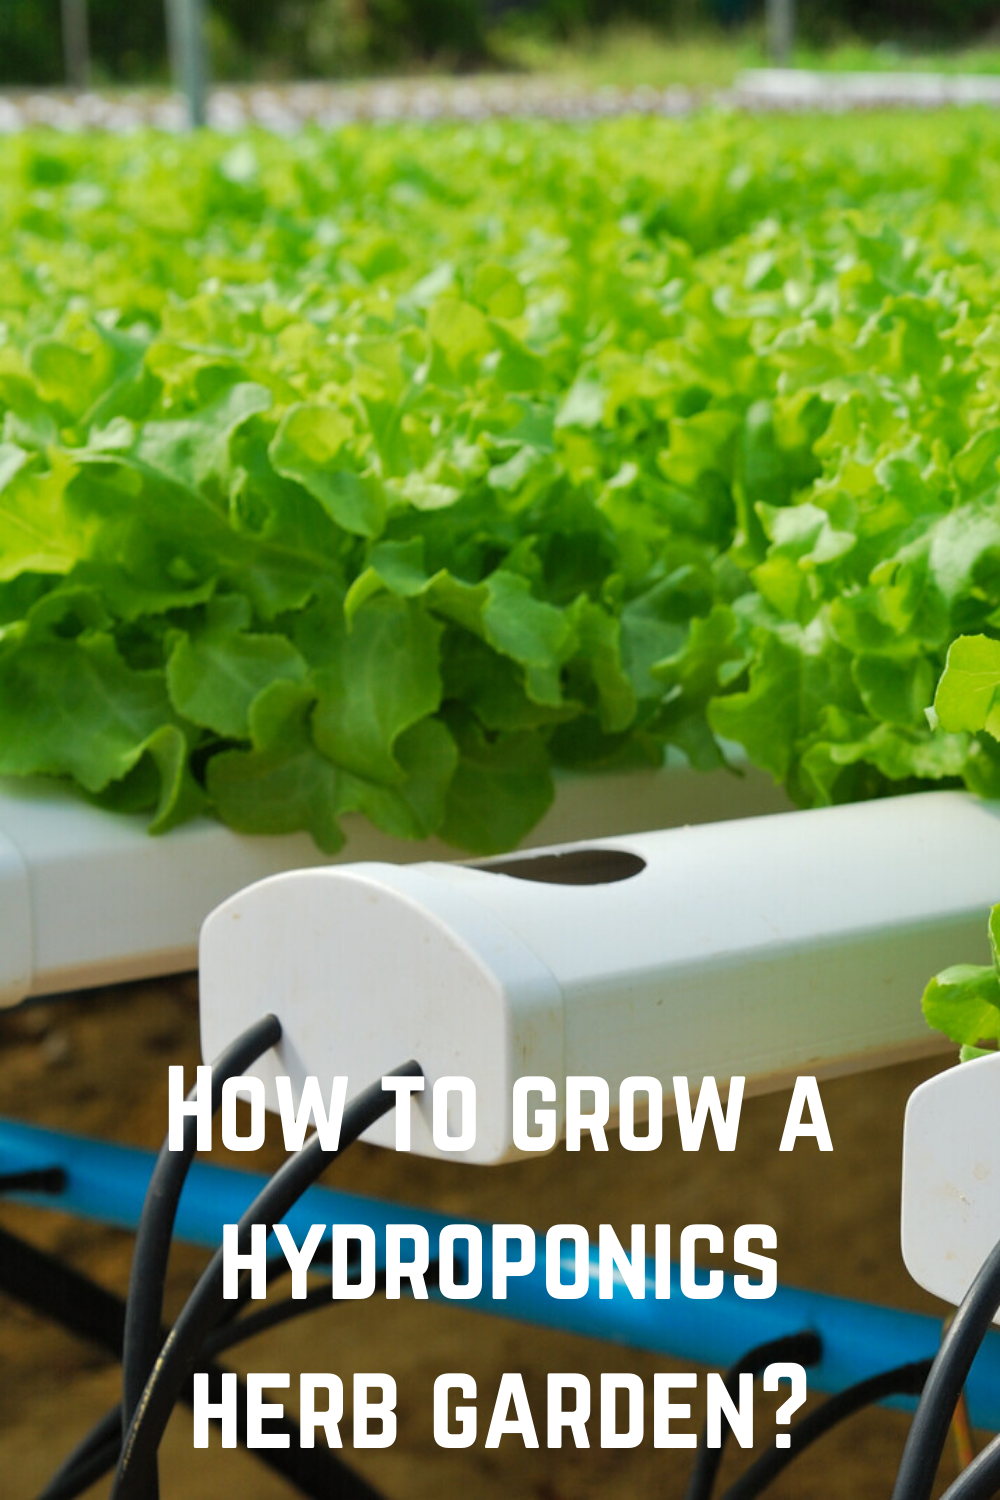 How to Grow a Hydroponics Herb Garden? in 2020 ...